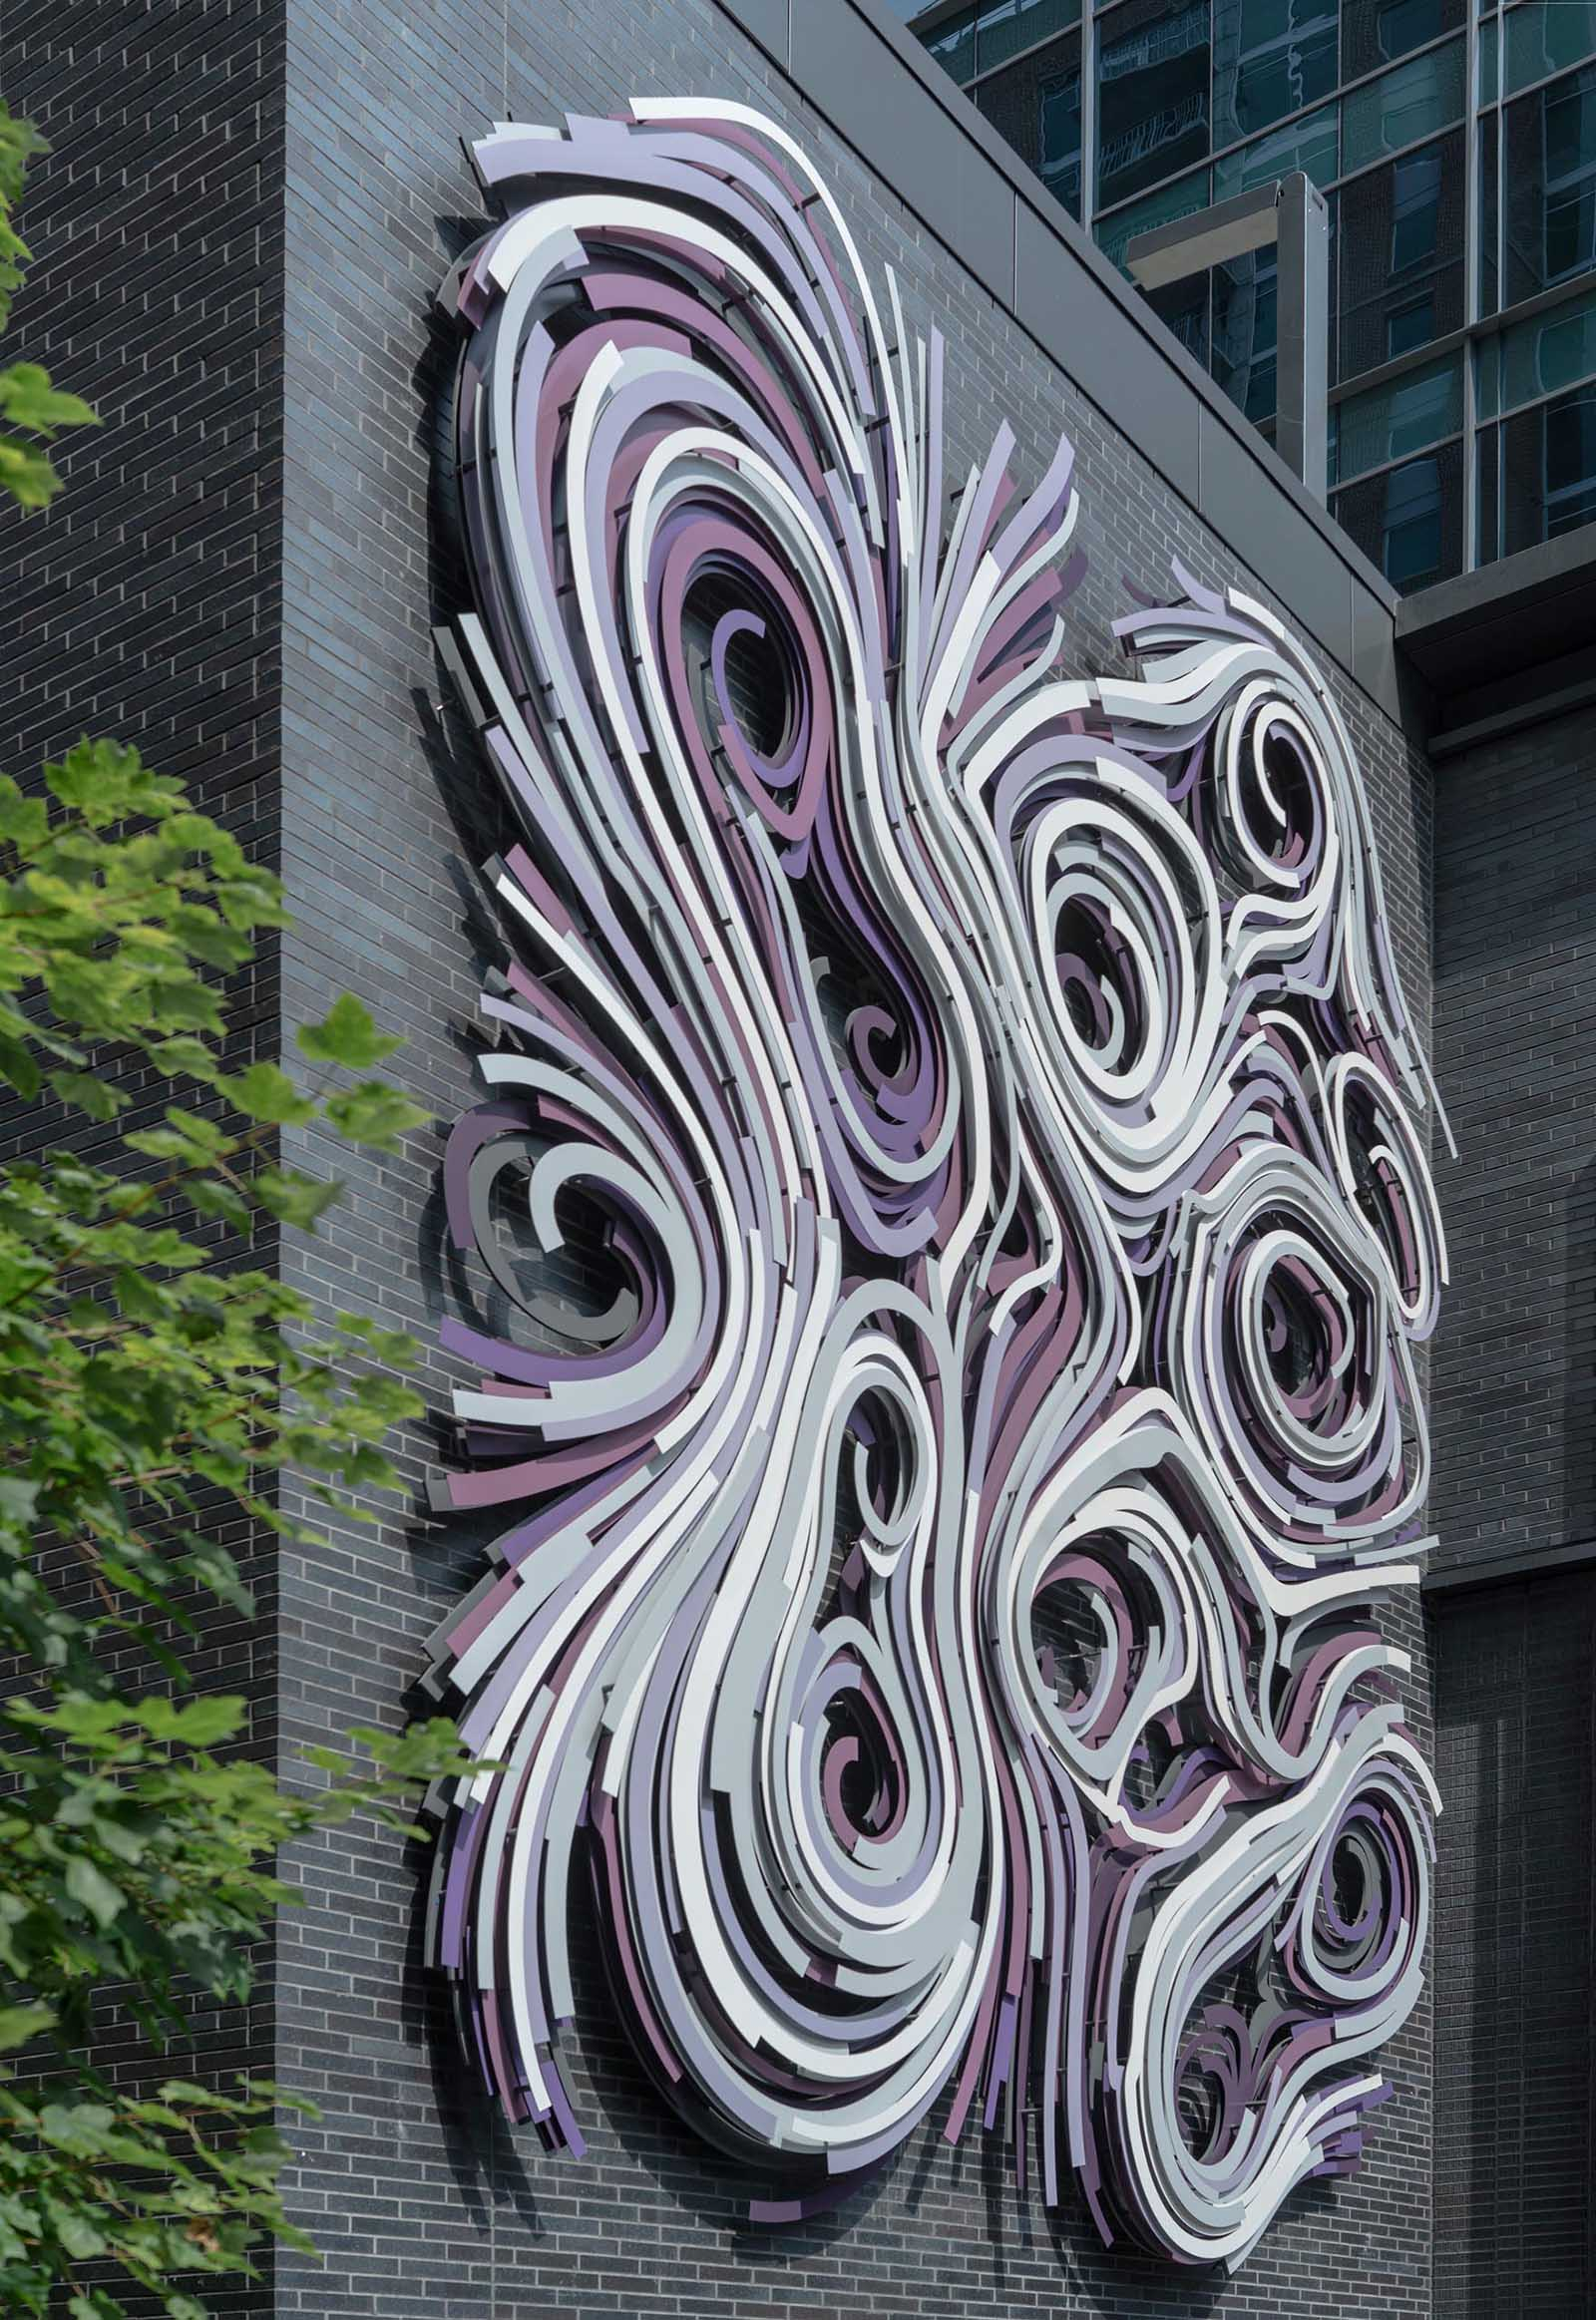 A modern large scale mural on the side of a building.